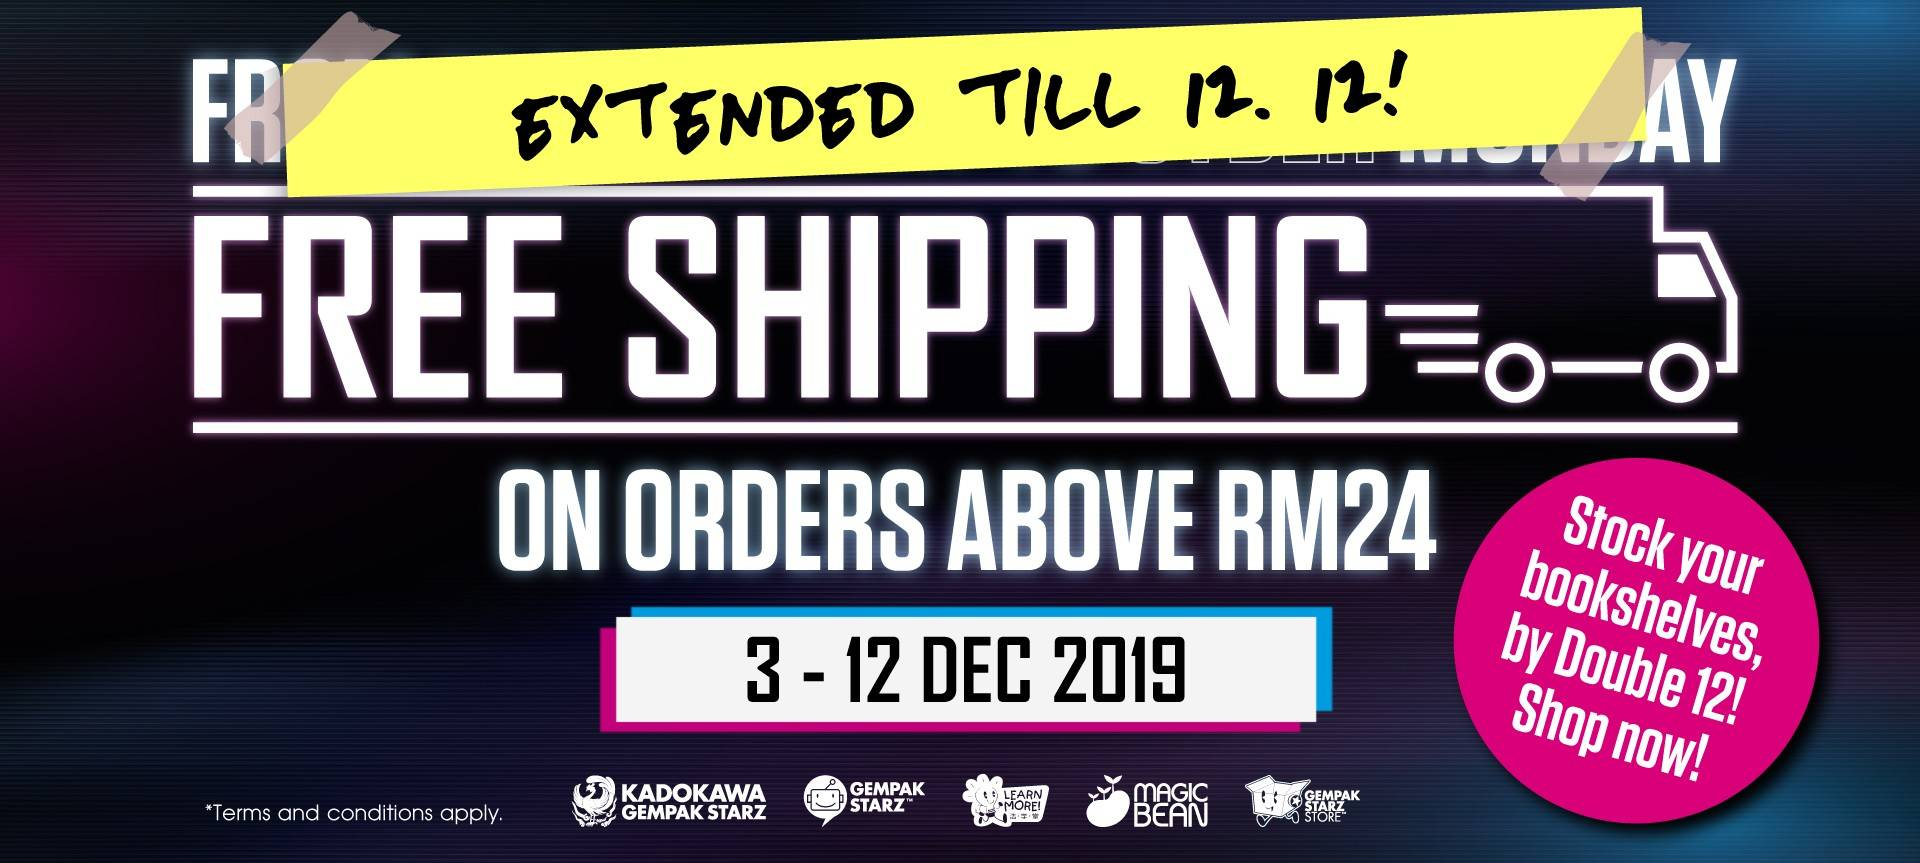 Sales Extended to Double 12 2019